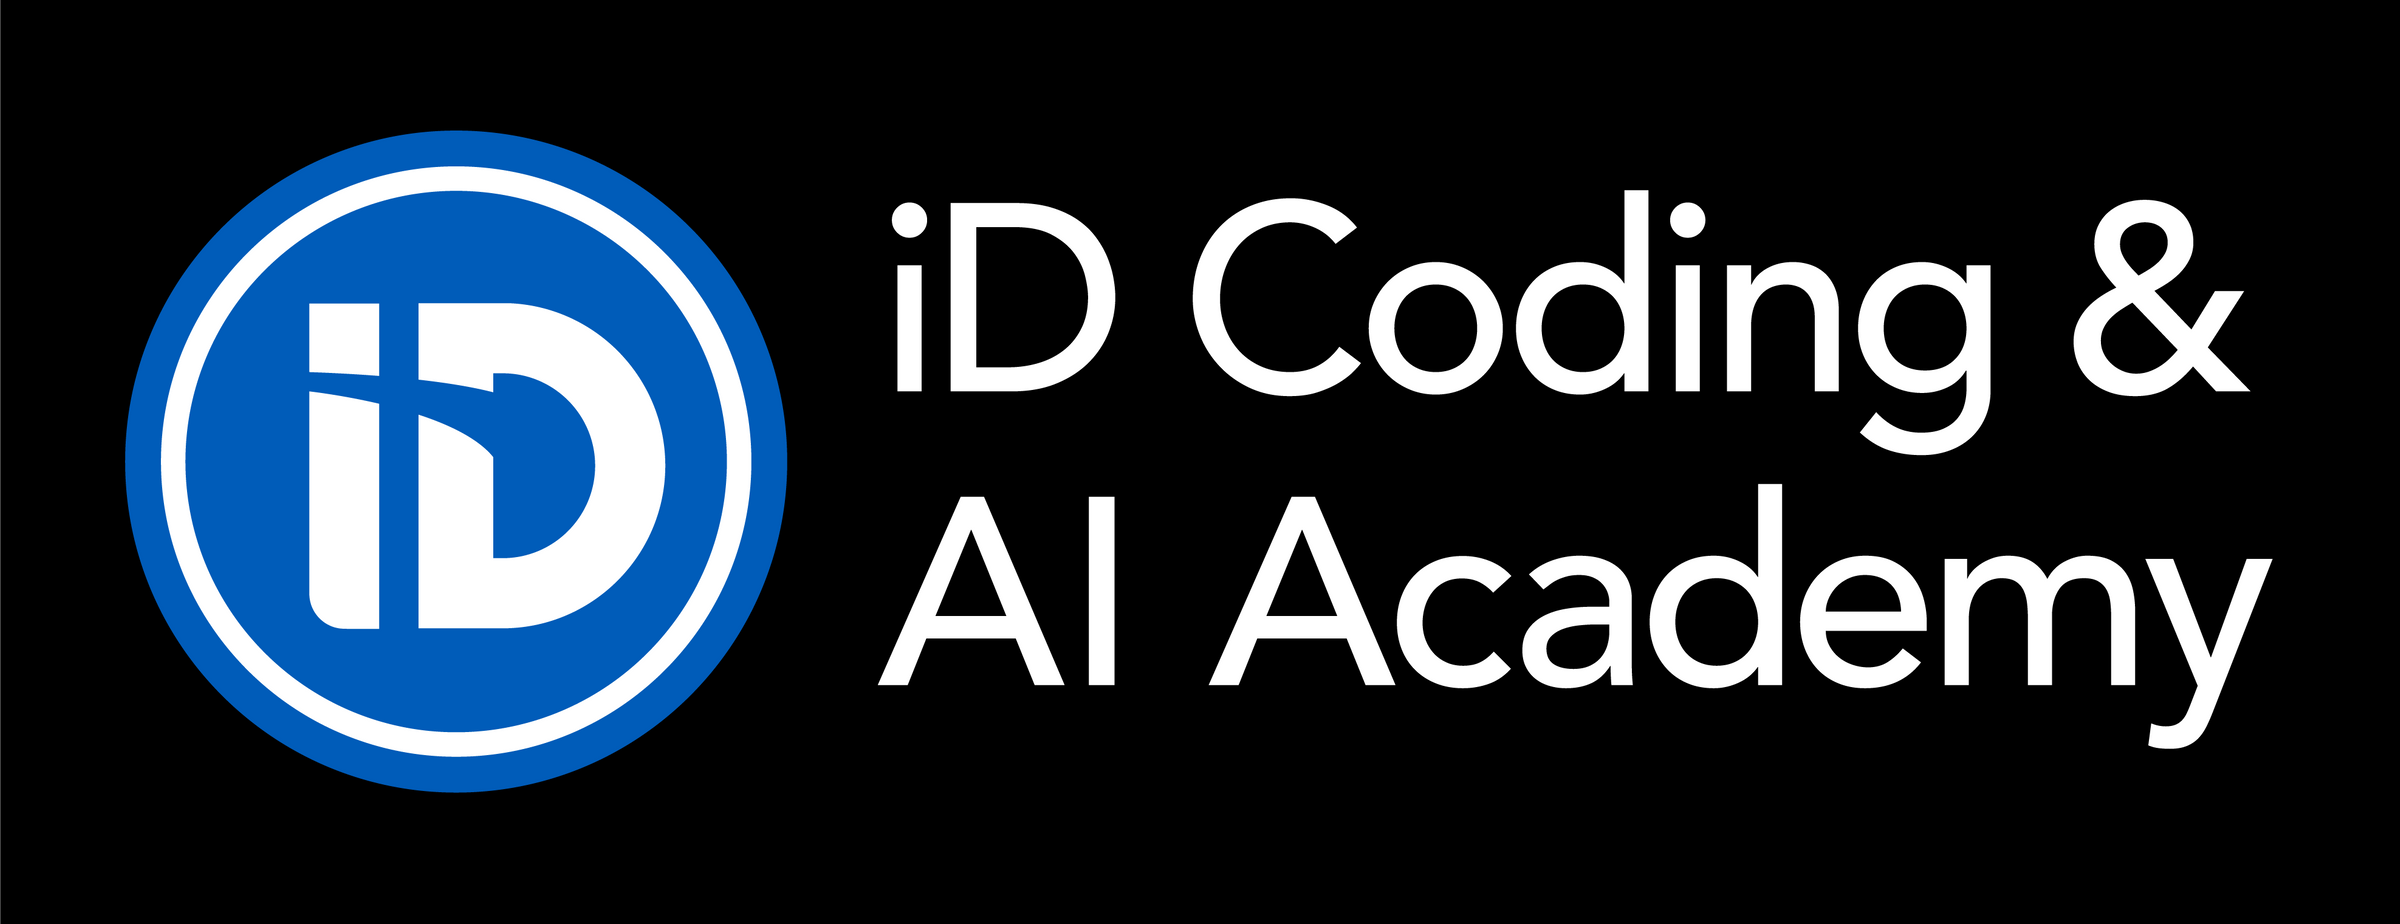 iD Coding & AI Academy for Teens - Held at NYU - Washington Square